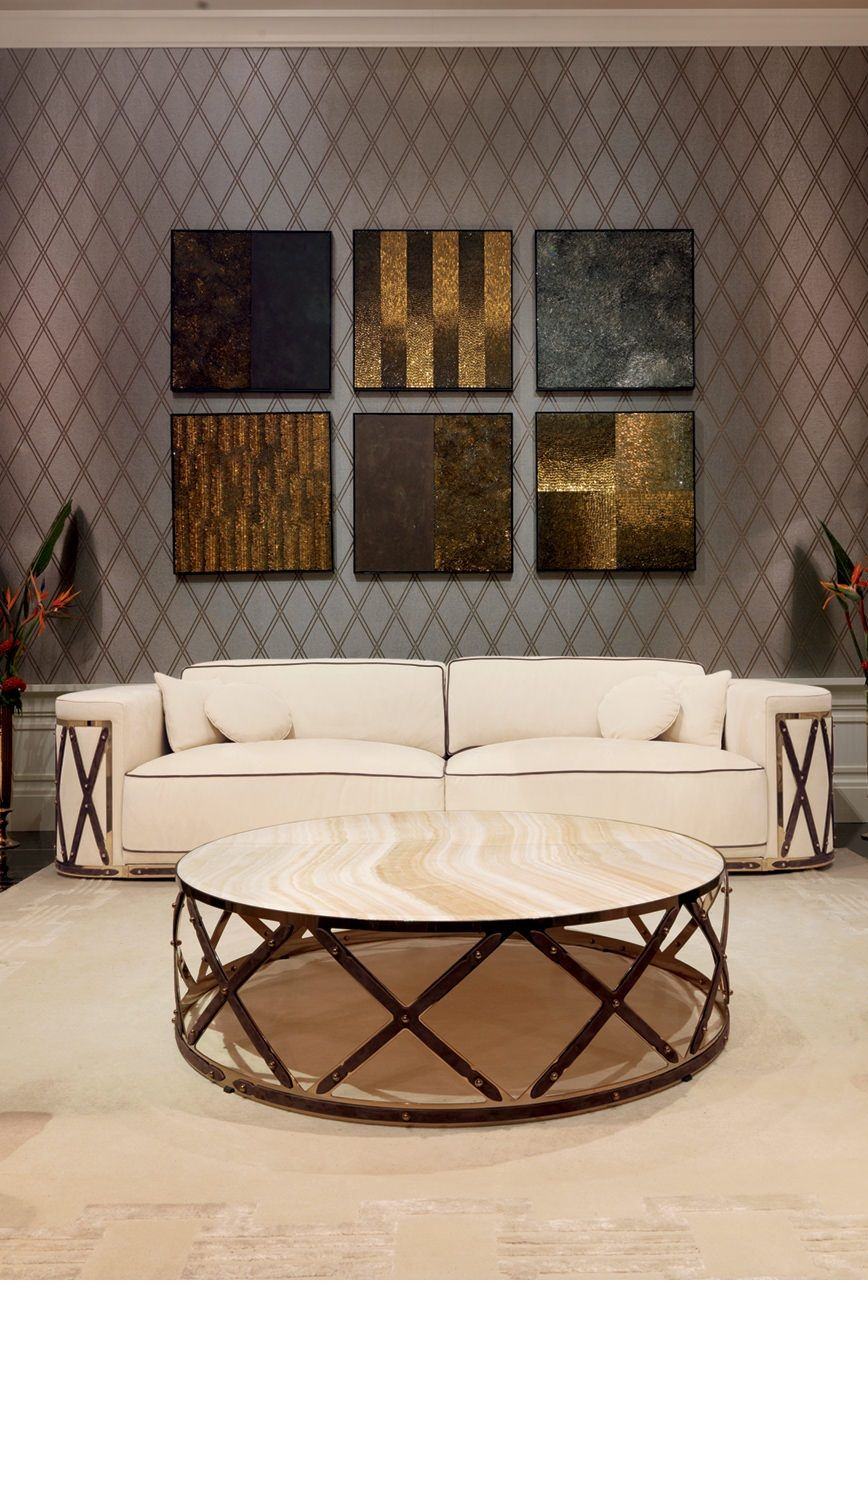 Modern Center Table With Cold Whitescontemporary Artworkluxury Mesmerizing Modern Center Table Designs For Living Room Inspiration